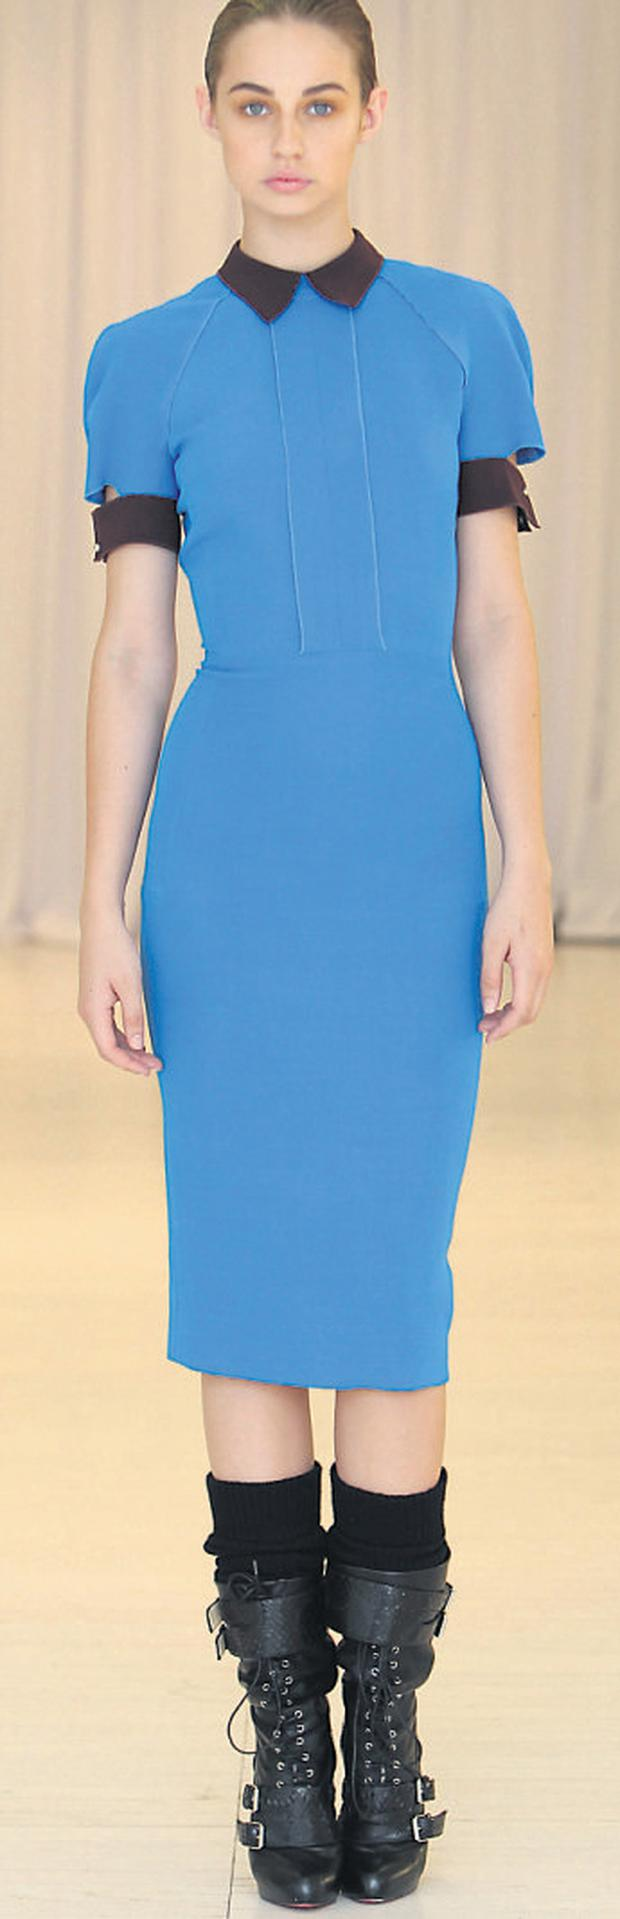 Thalia wears a Polo Fitted Dress in electric blue and maroon double crepe